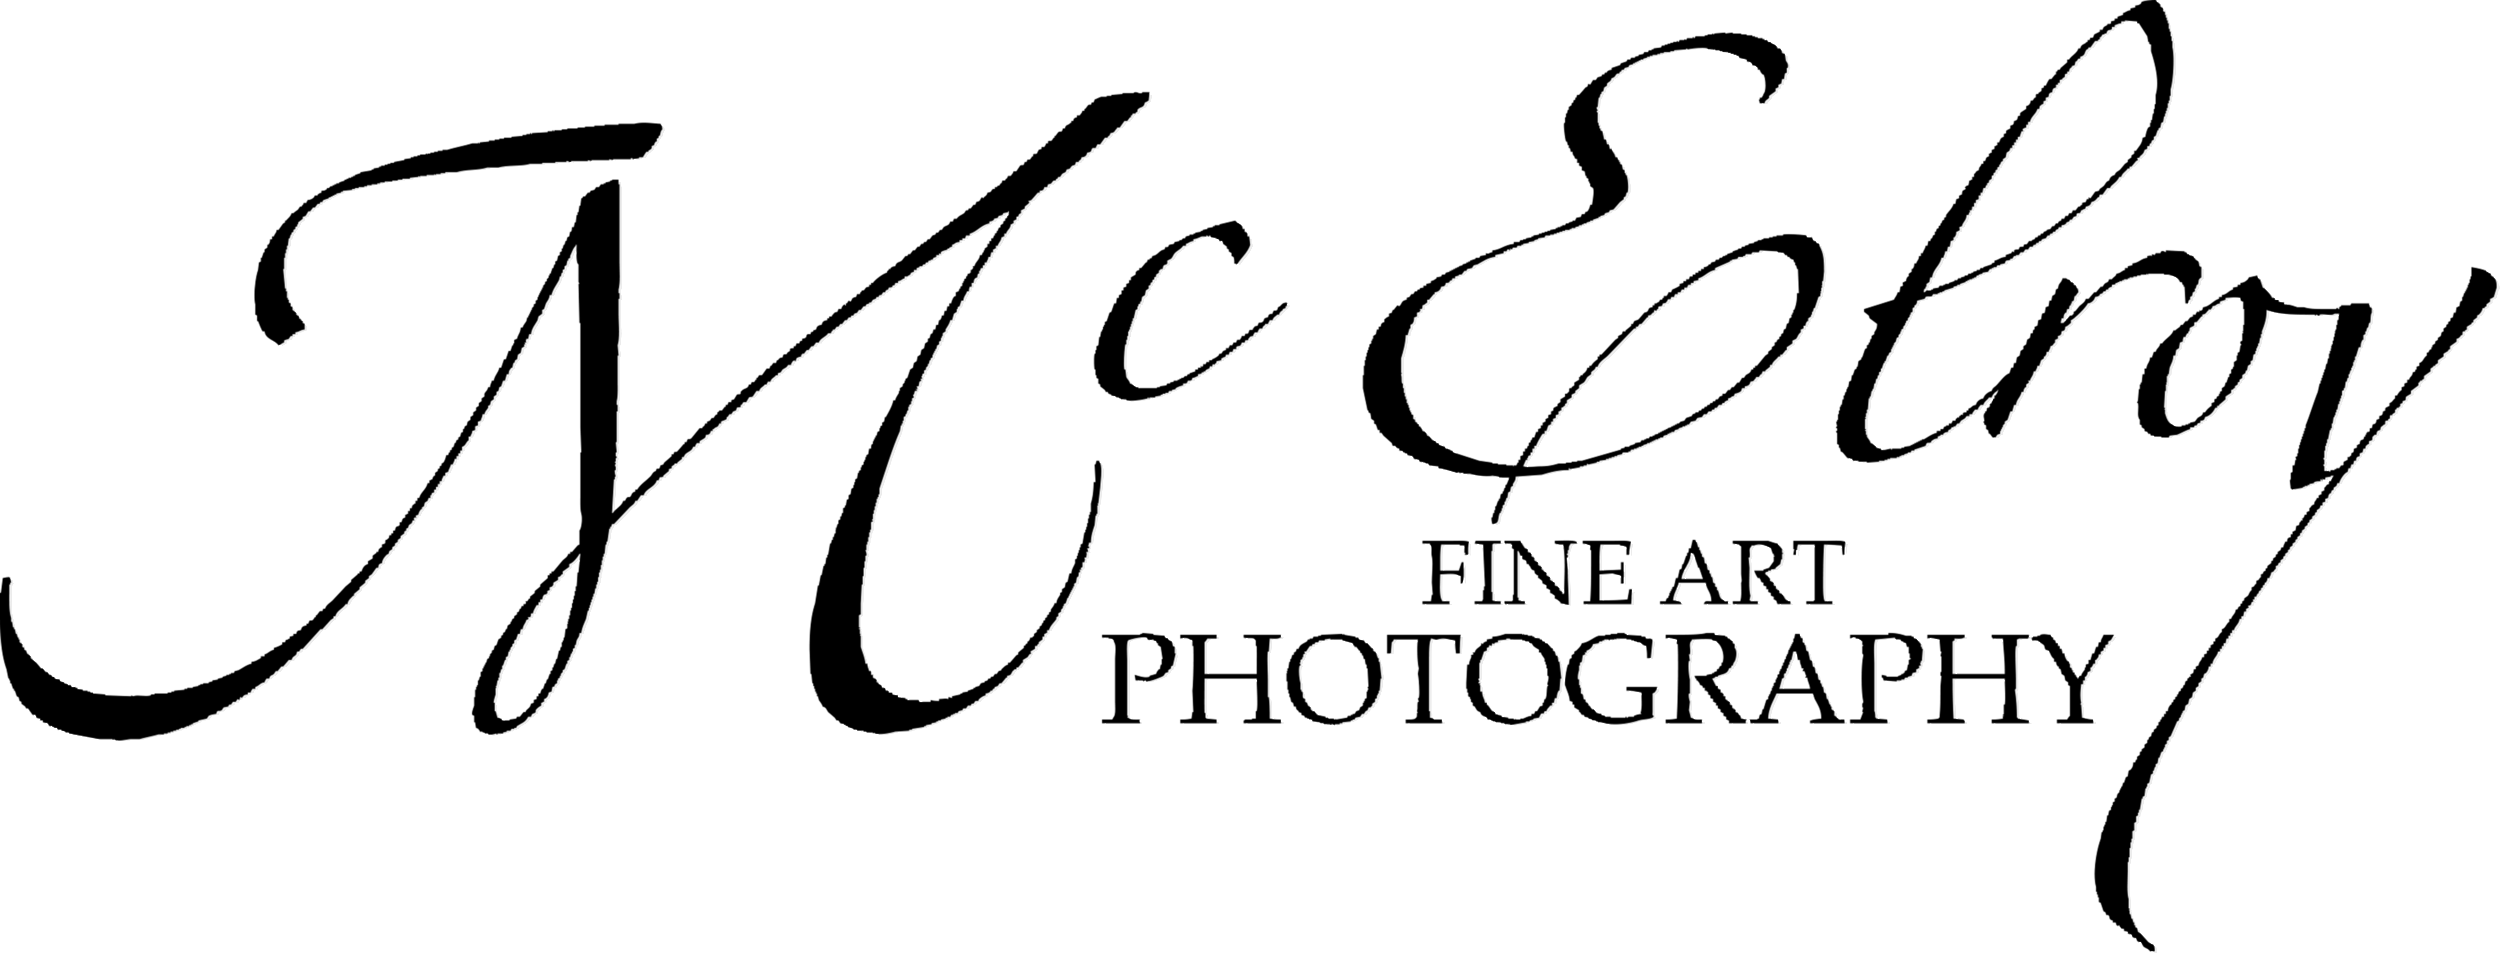 McElroy Fine Art Photography